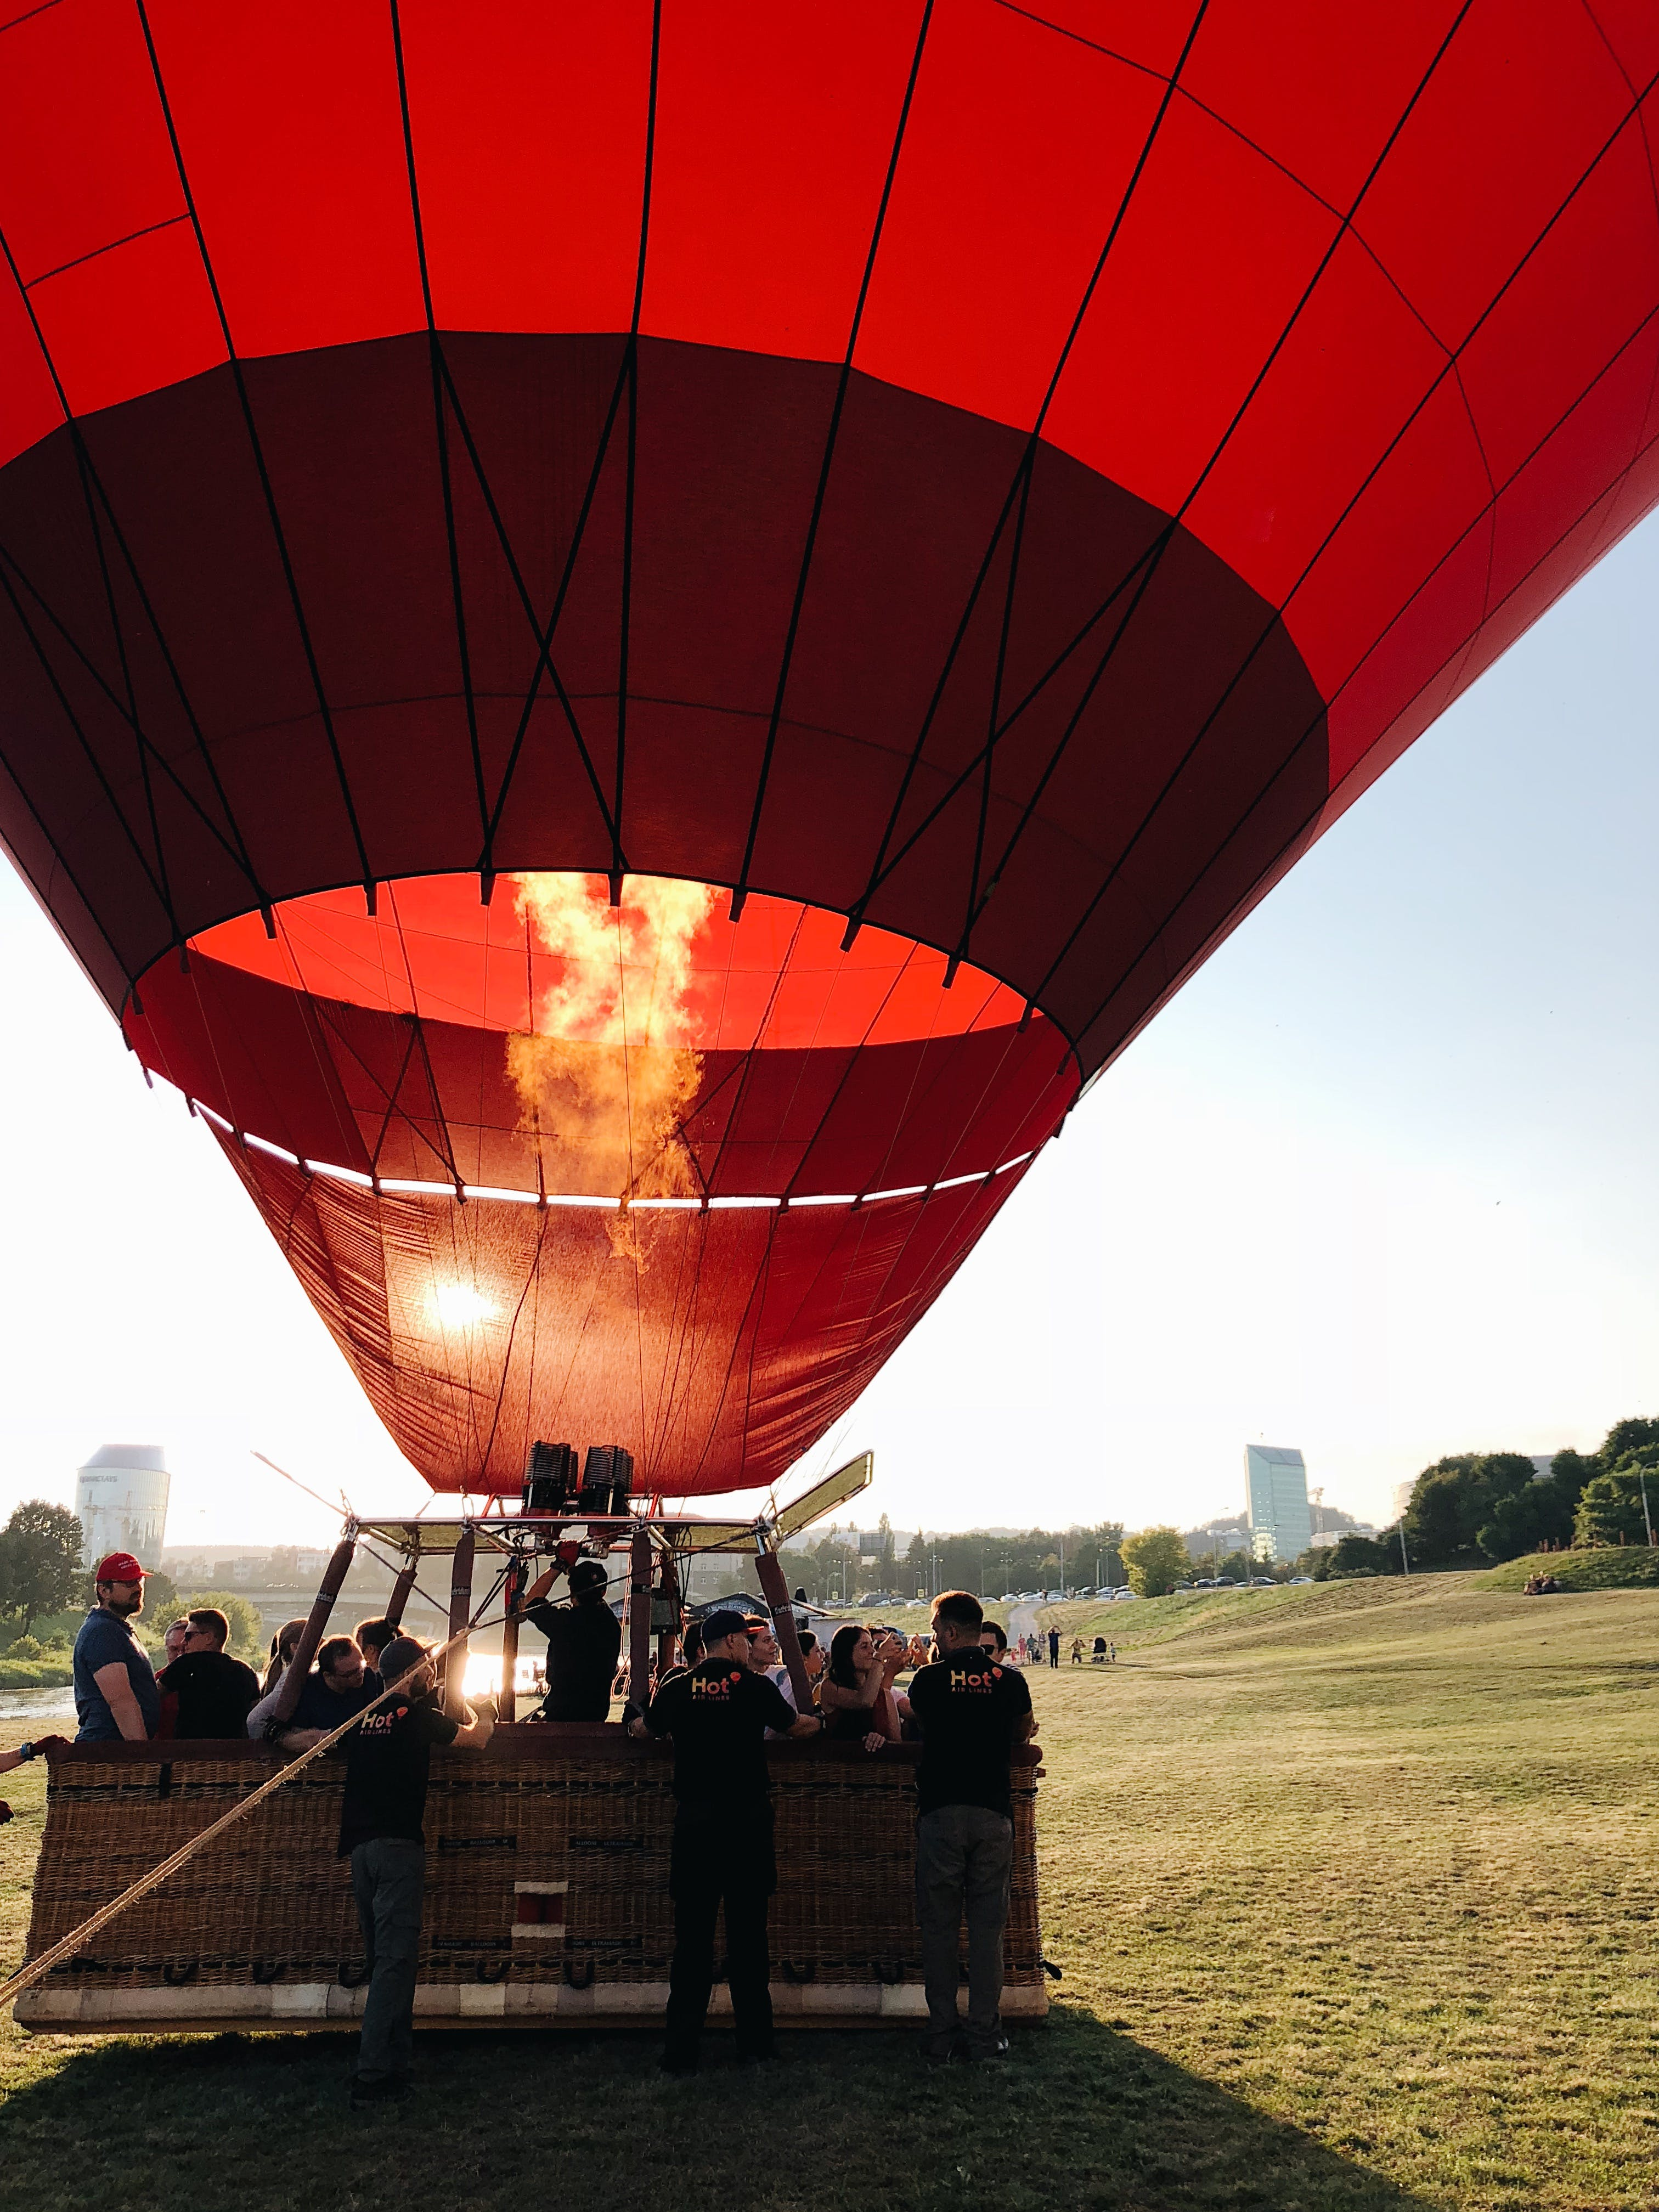 People Gathered Around Red Hot Air Balloon